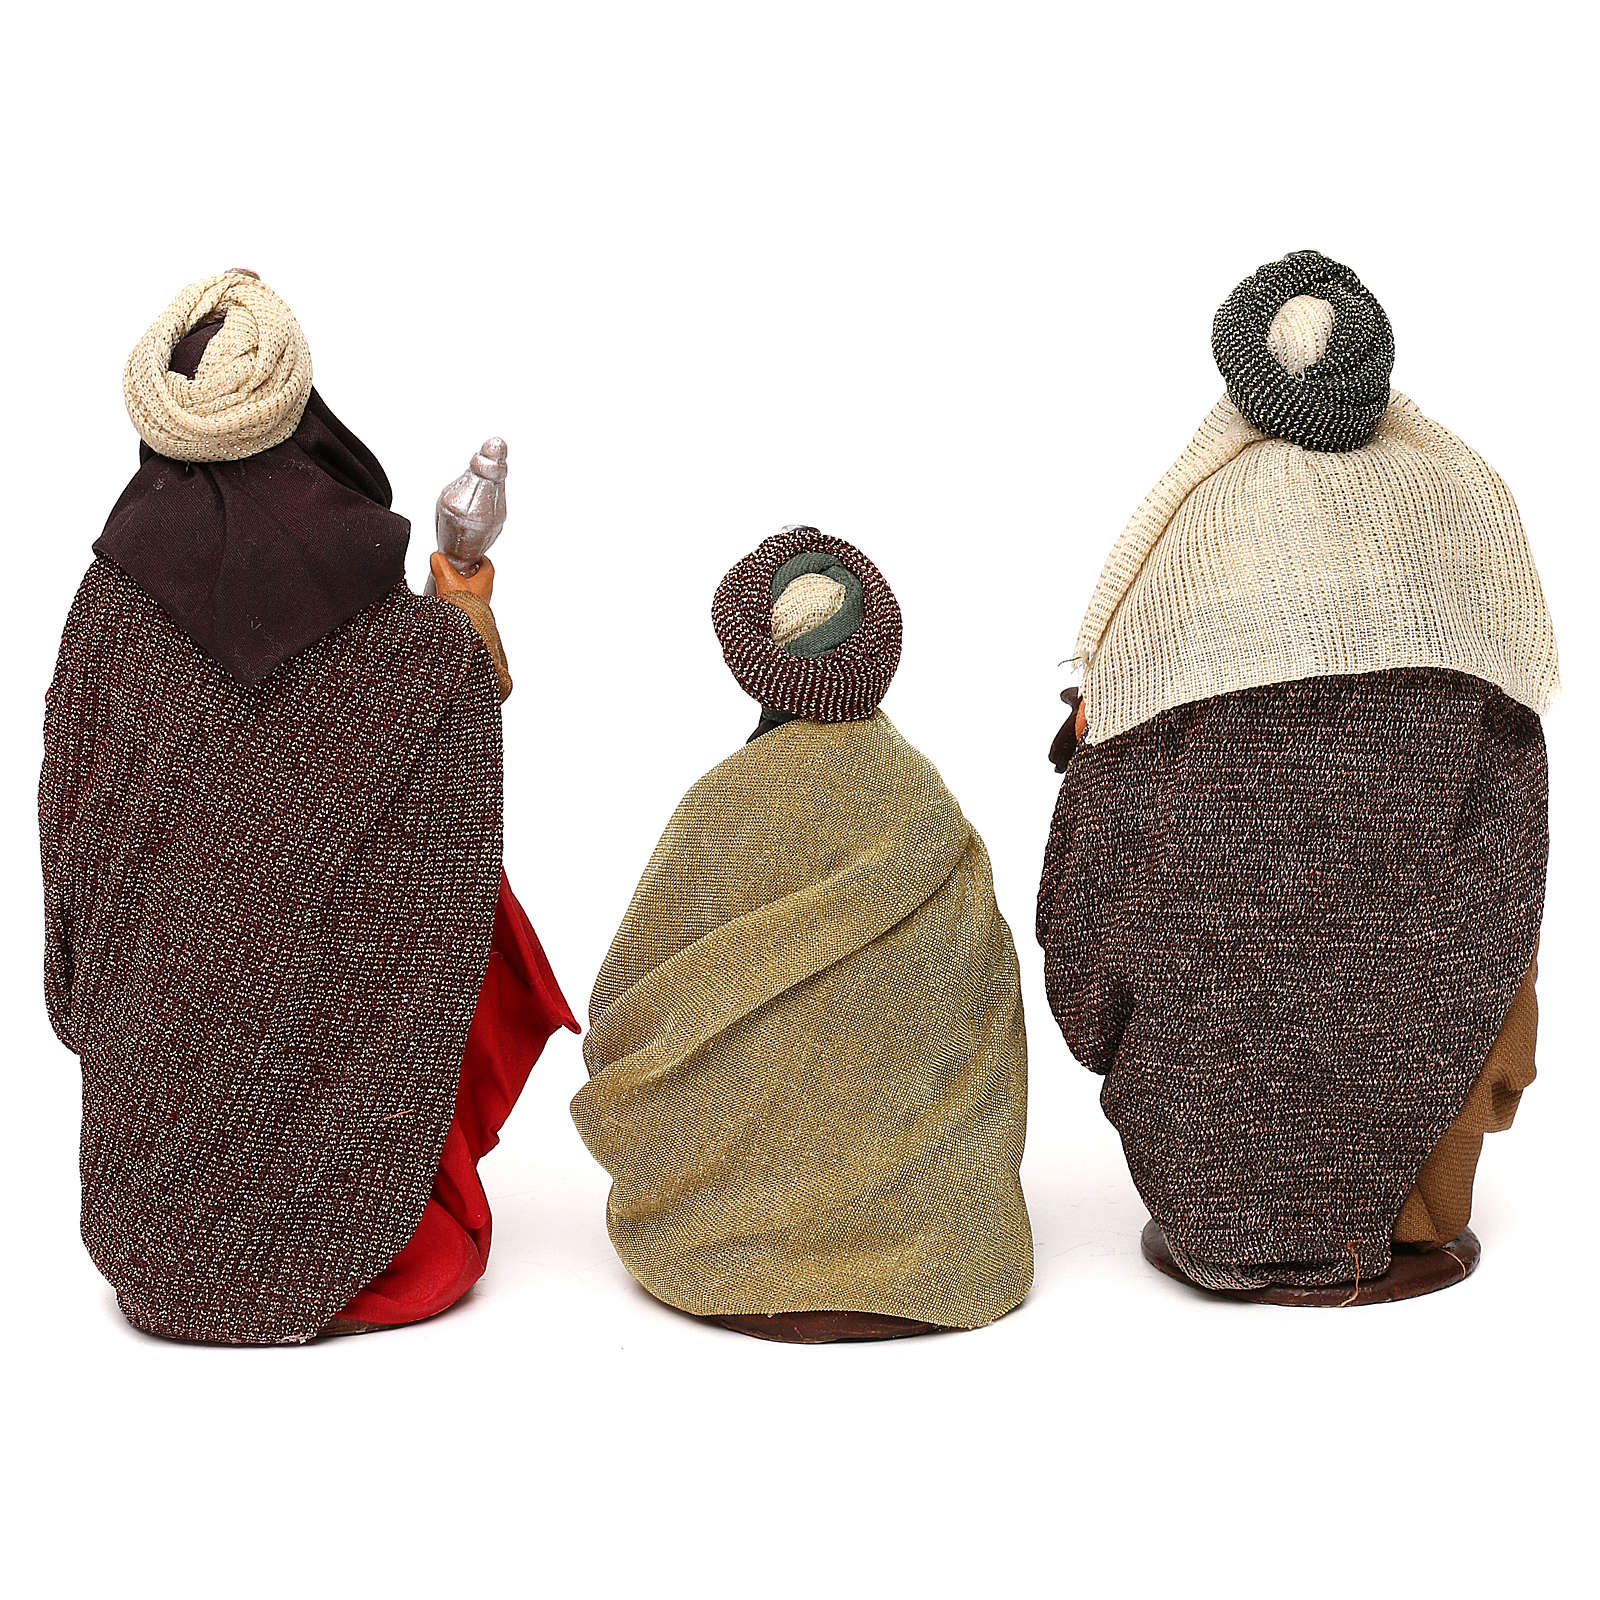 Nativity set accessories Three wise kings 14 cm figurines 4